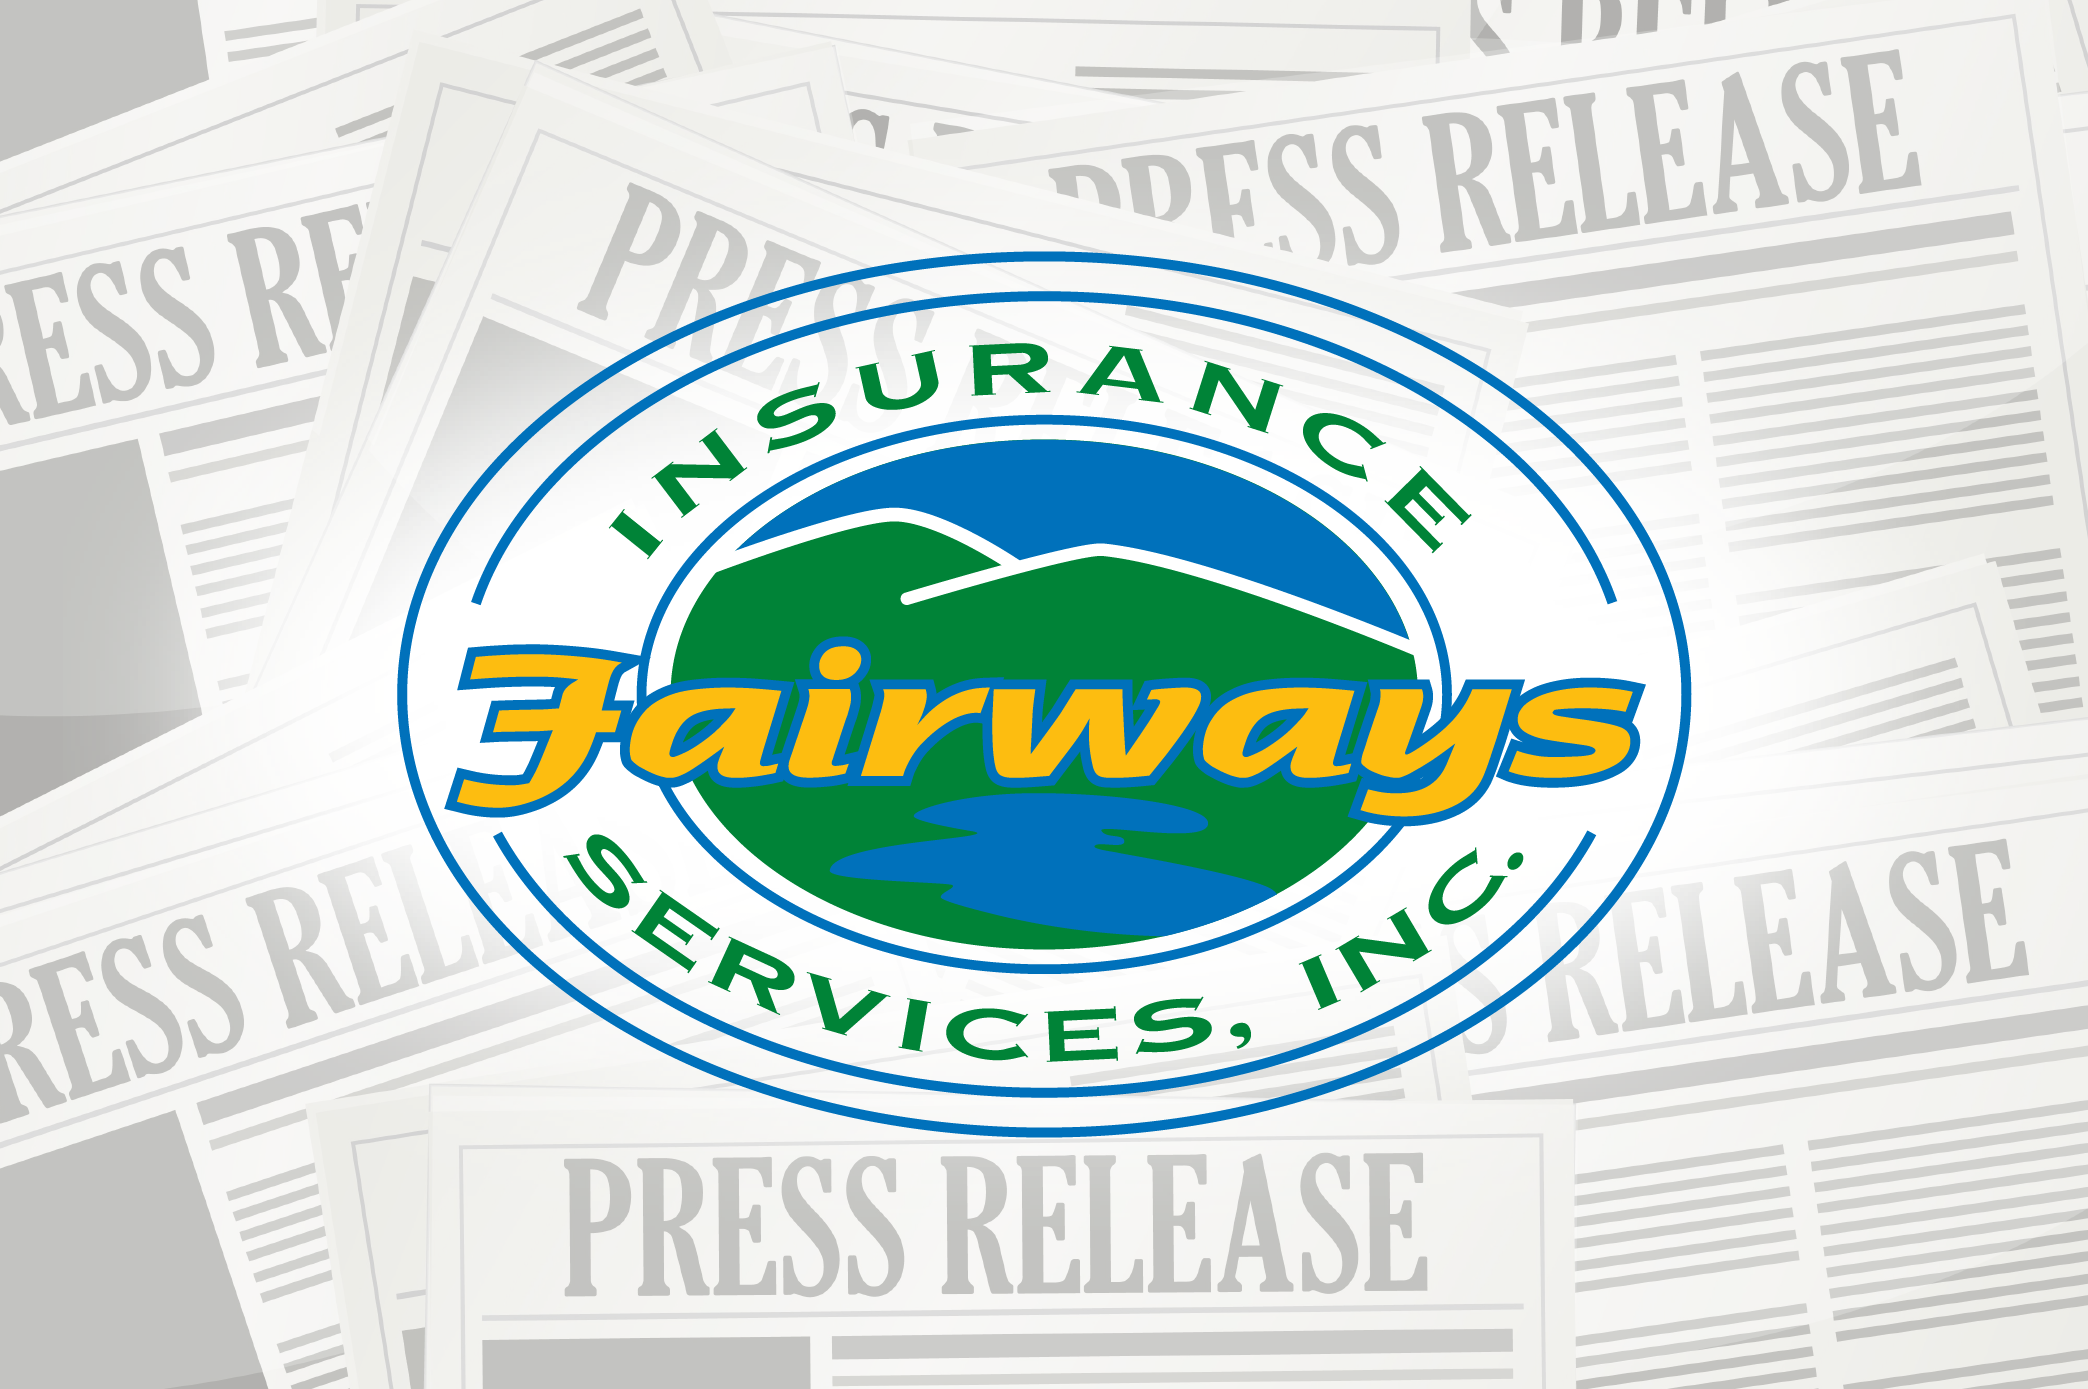 Fairways Insurance Services, Inc. Press Release